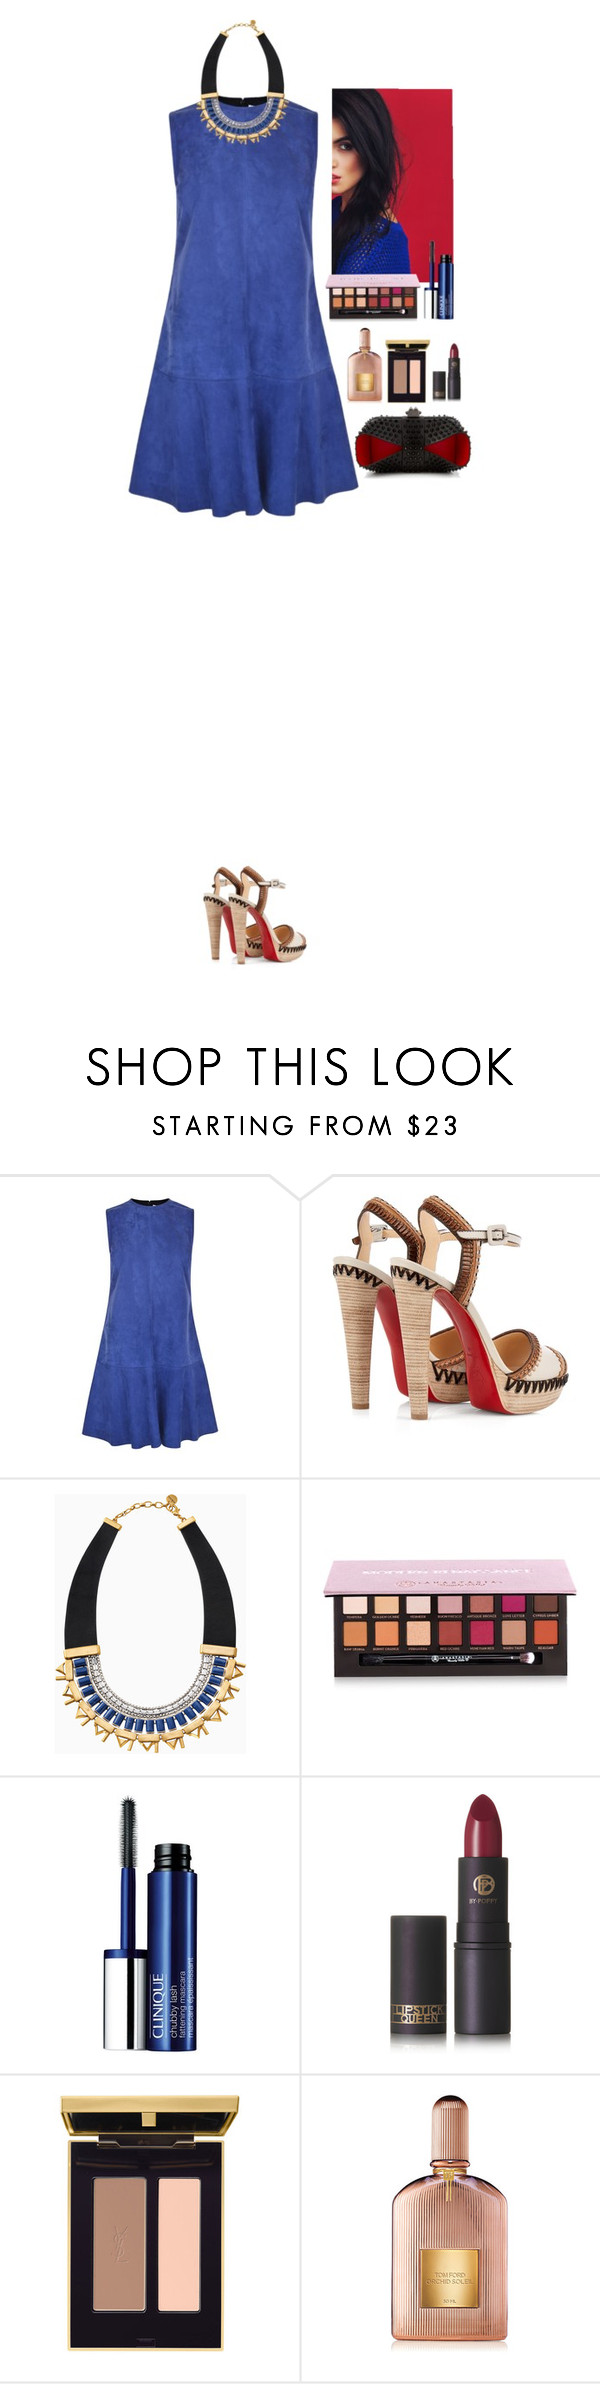 """""""Aztec"""" by eliza-redkina on Polyvore featuring мода, Ted Baker, Christian Louboutin, Stella & Dot, Anastasia Beverly Hills, Clinique, Lipstick Queen, Tom Ford, outfit и like"""